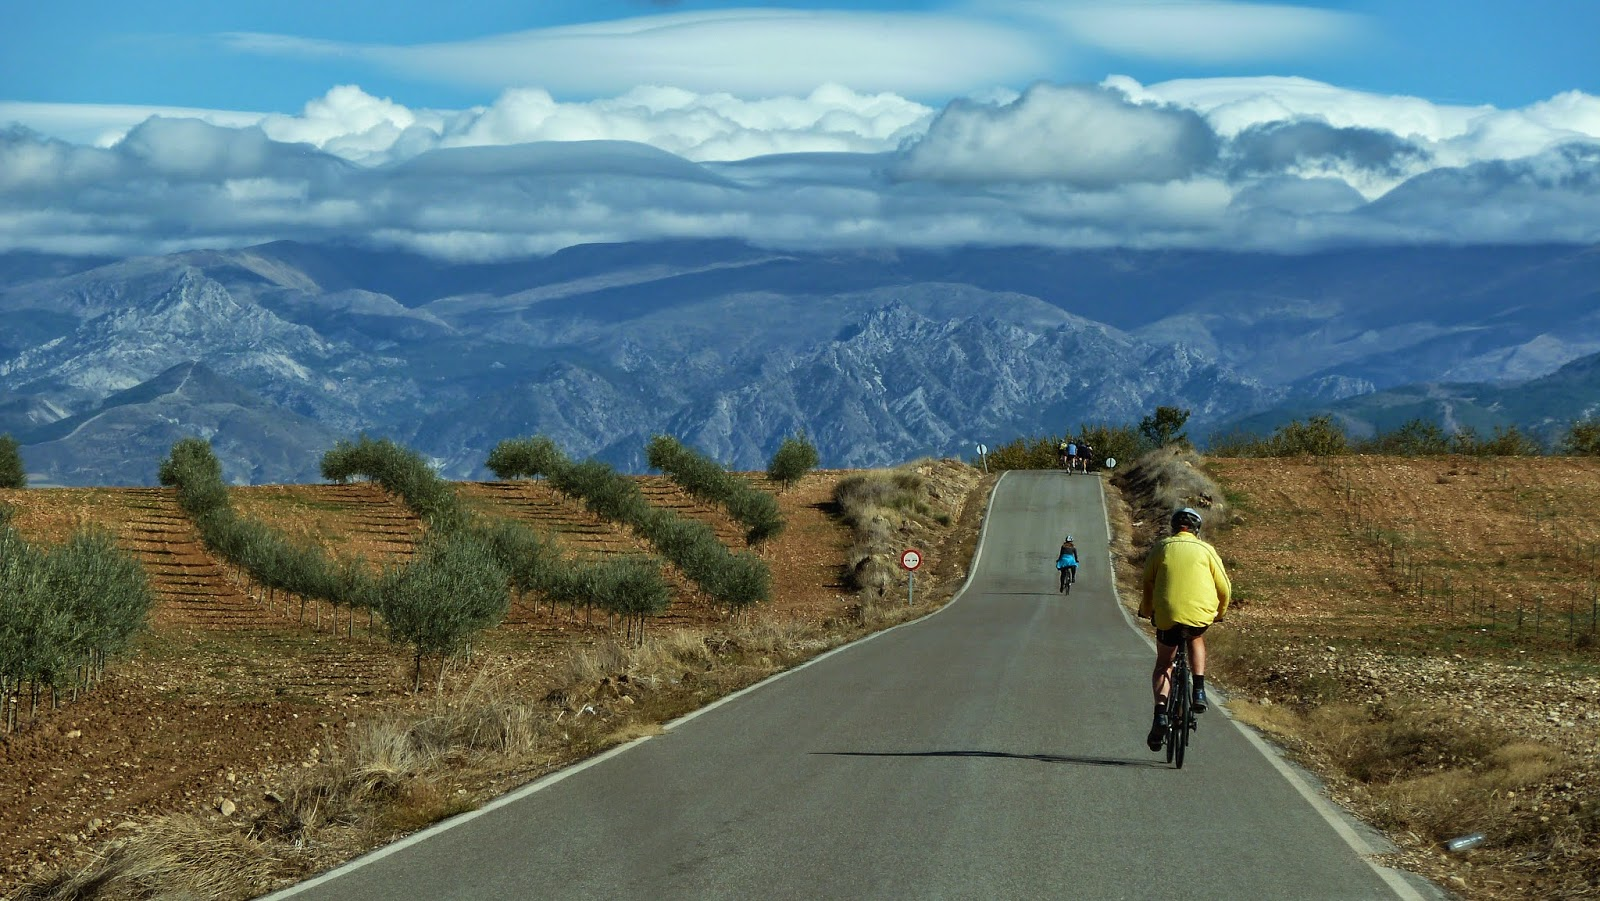 Road Cyclists will love biking in Granada, Andalucia and its Sierra Nevada